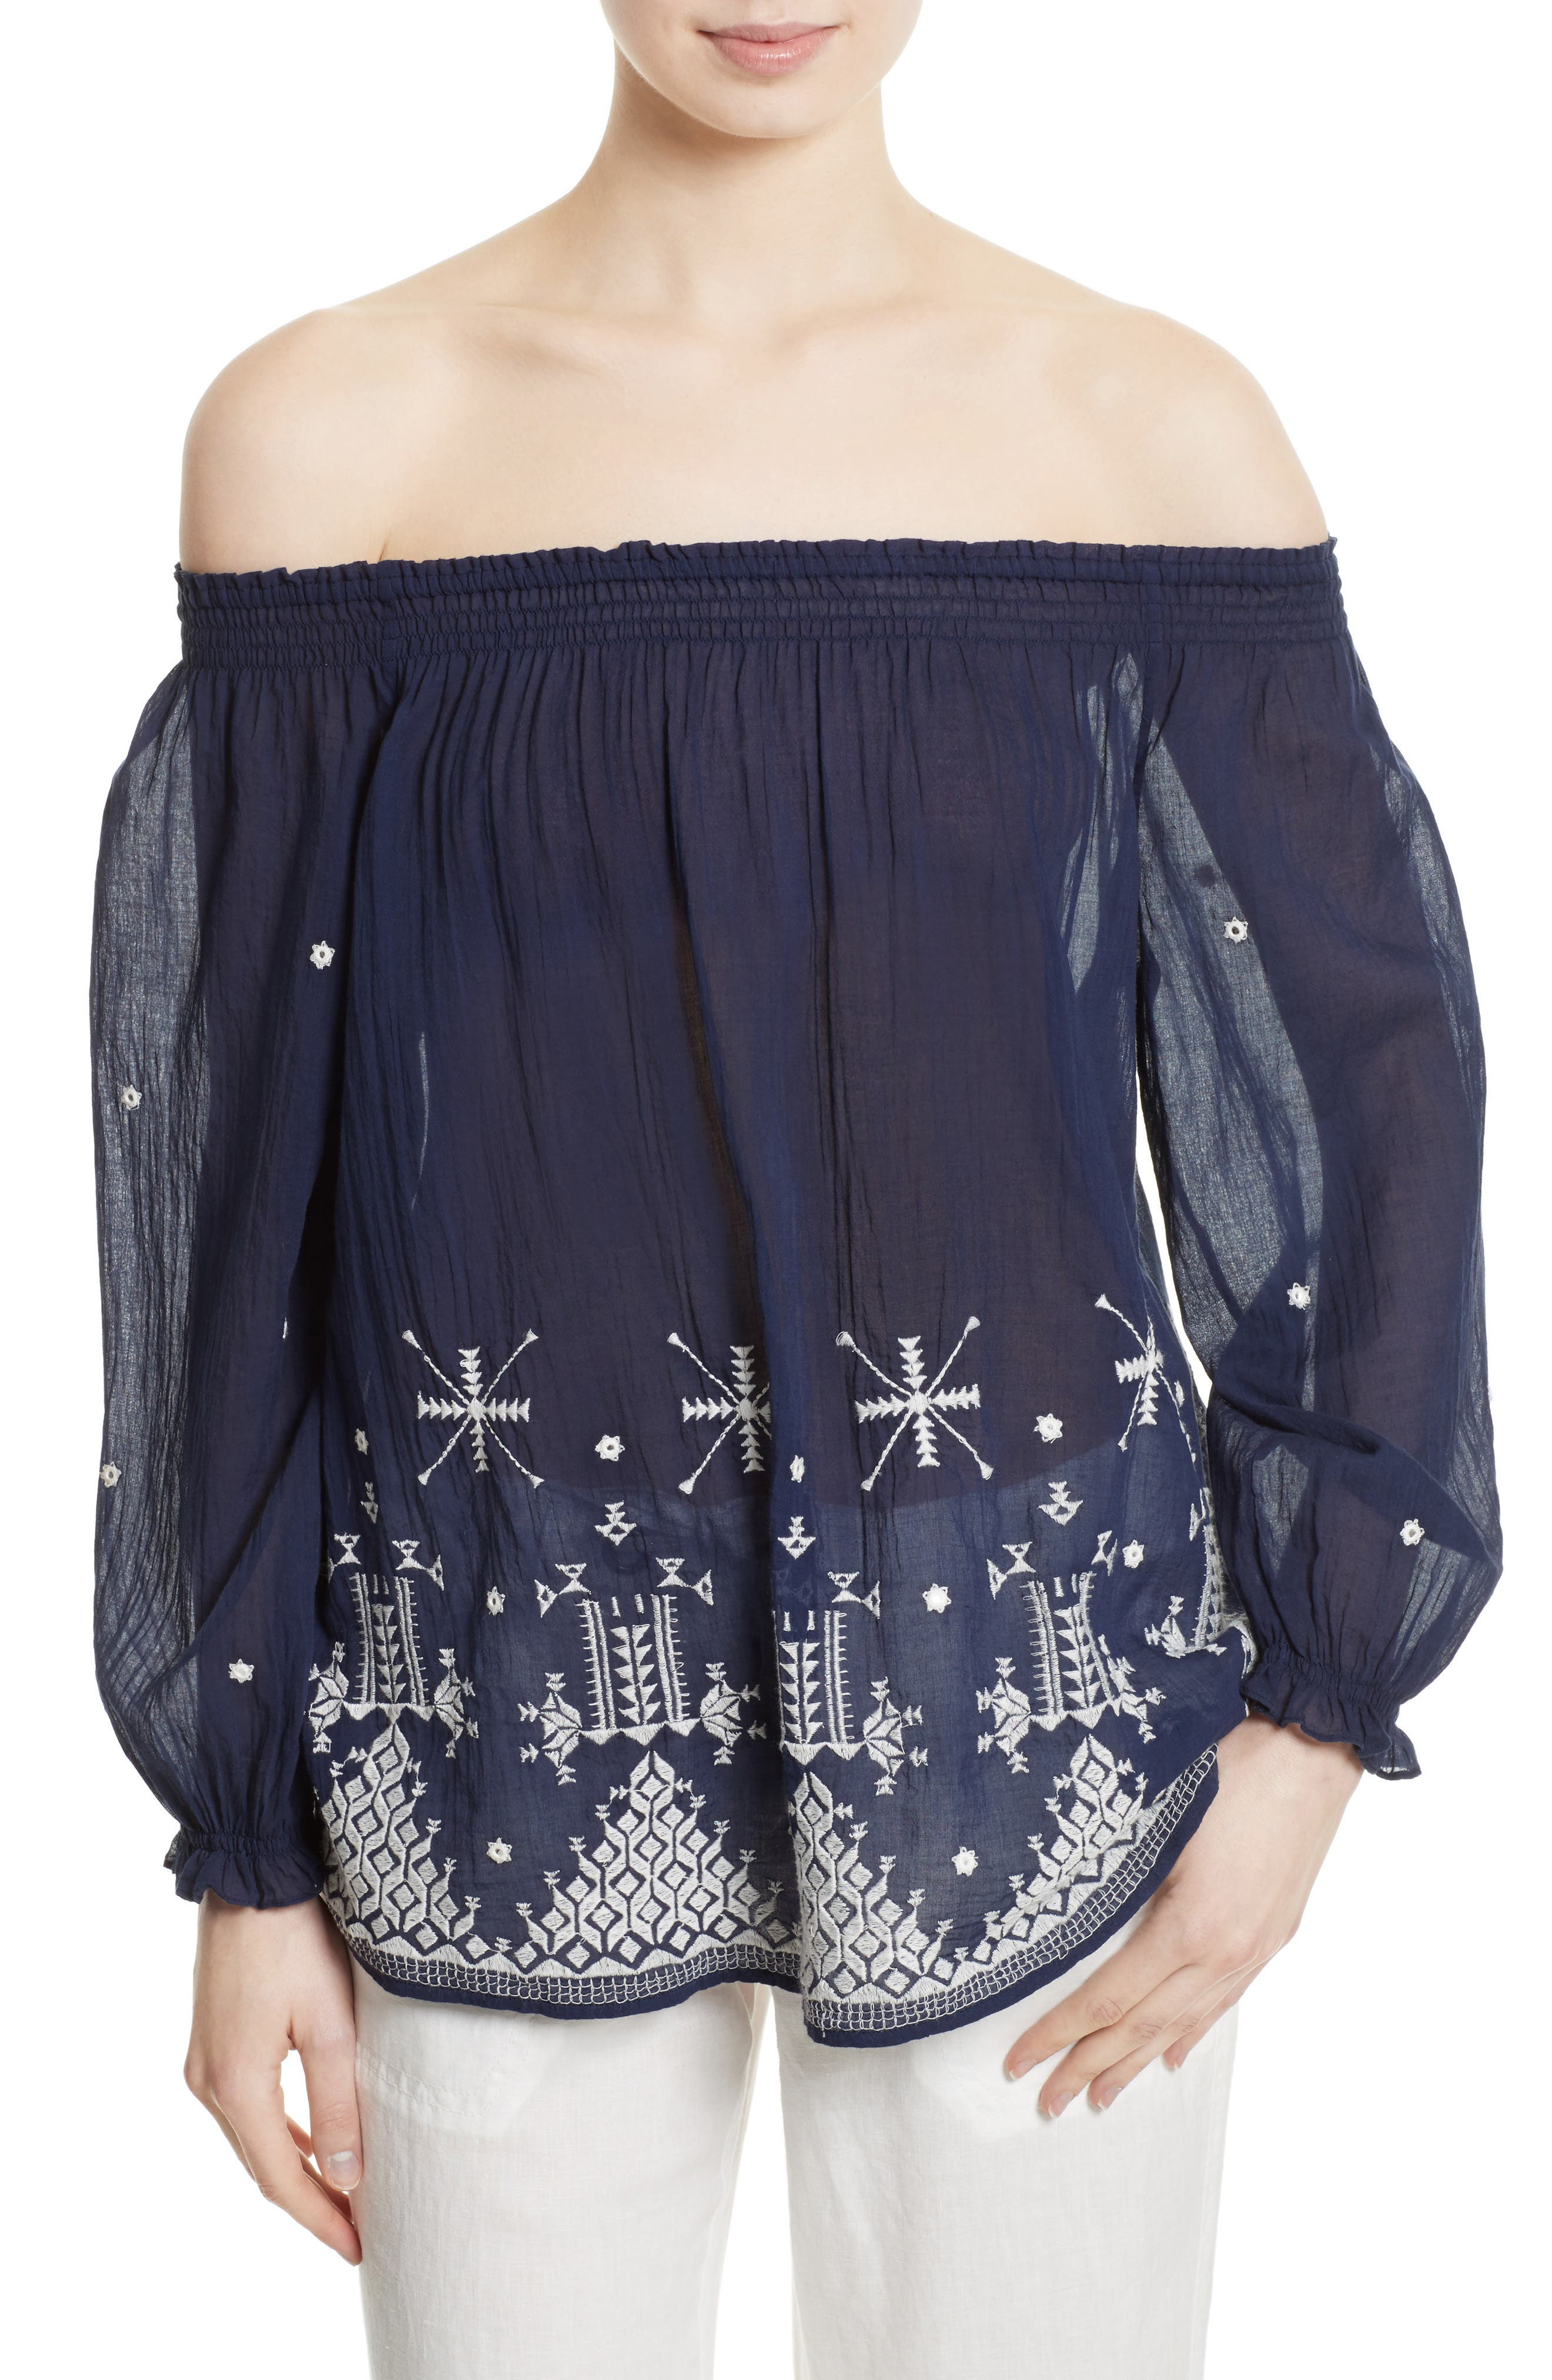 JOIE Kistine Embroidered Off the Shoulder Blouse